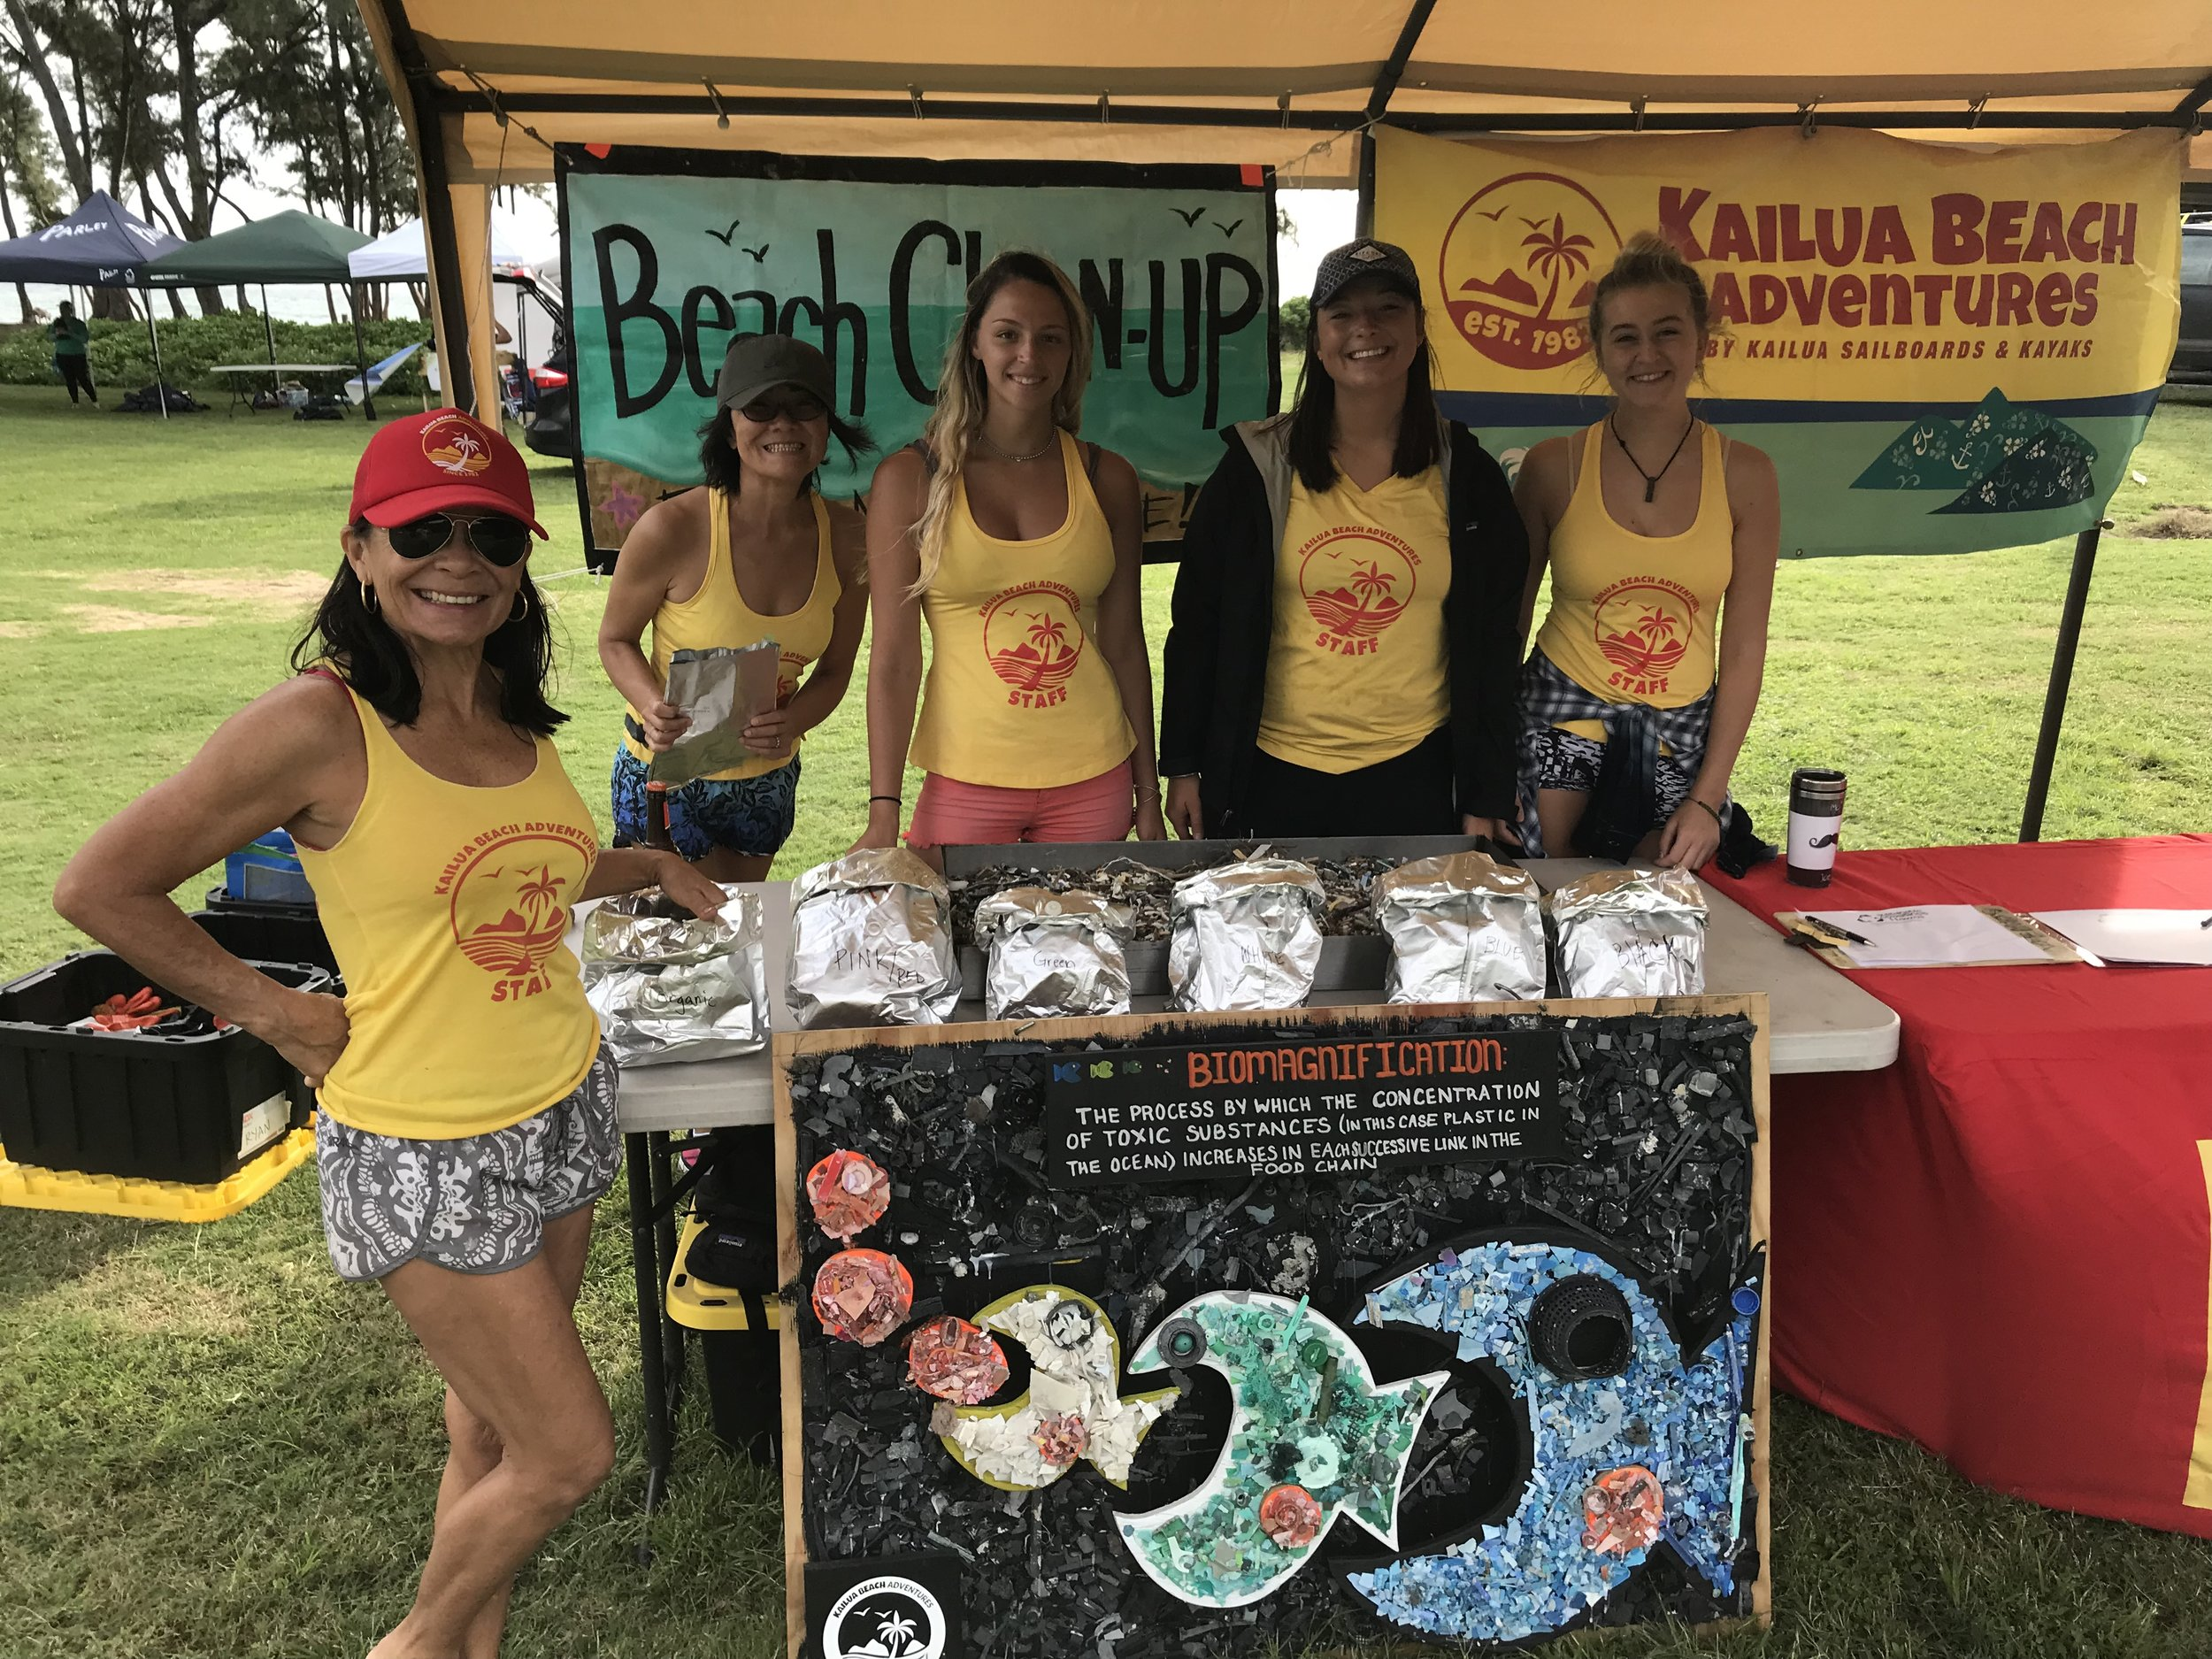 Kailua Beach Adventures Beach Cleanup